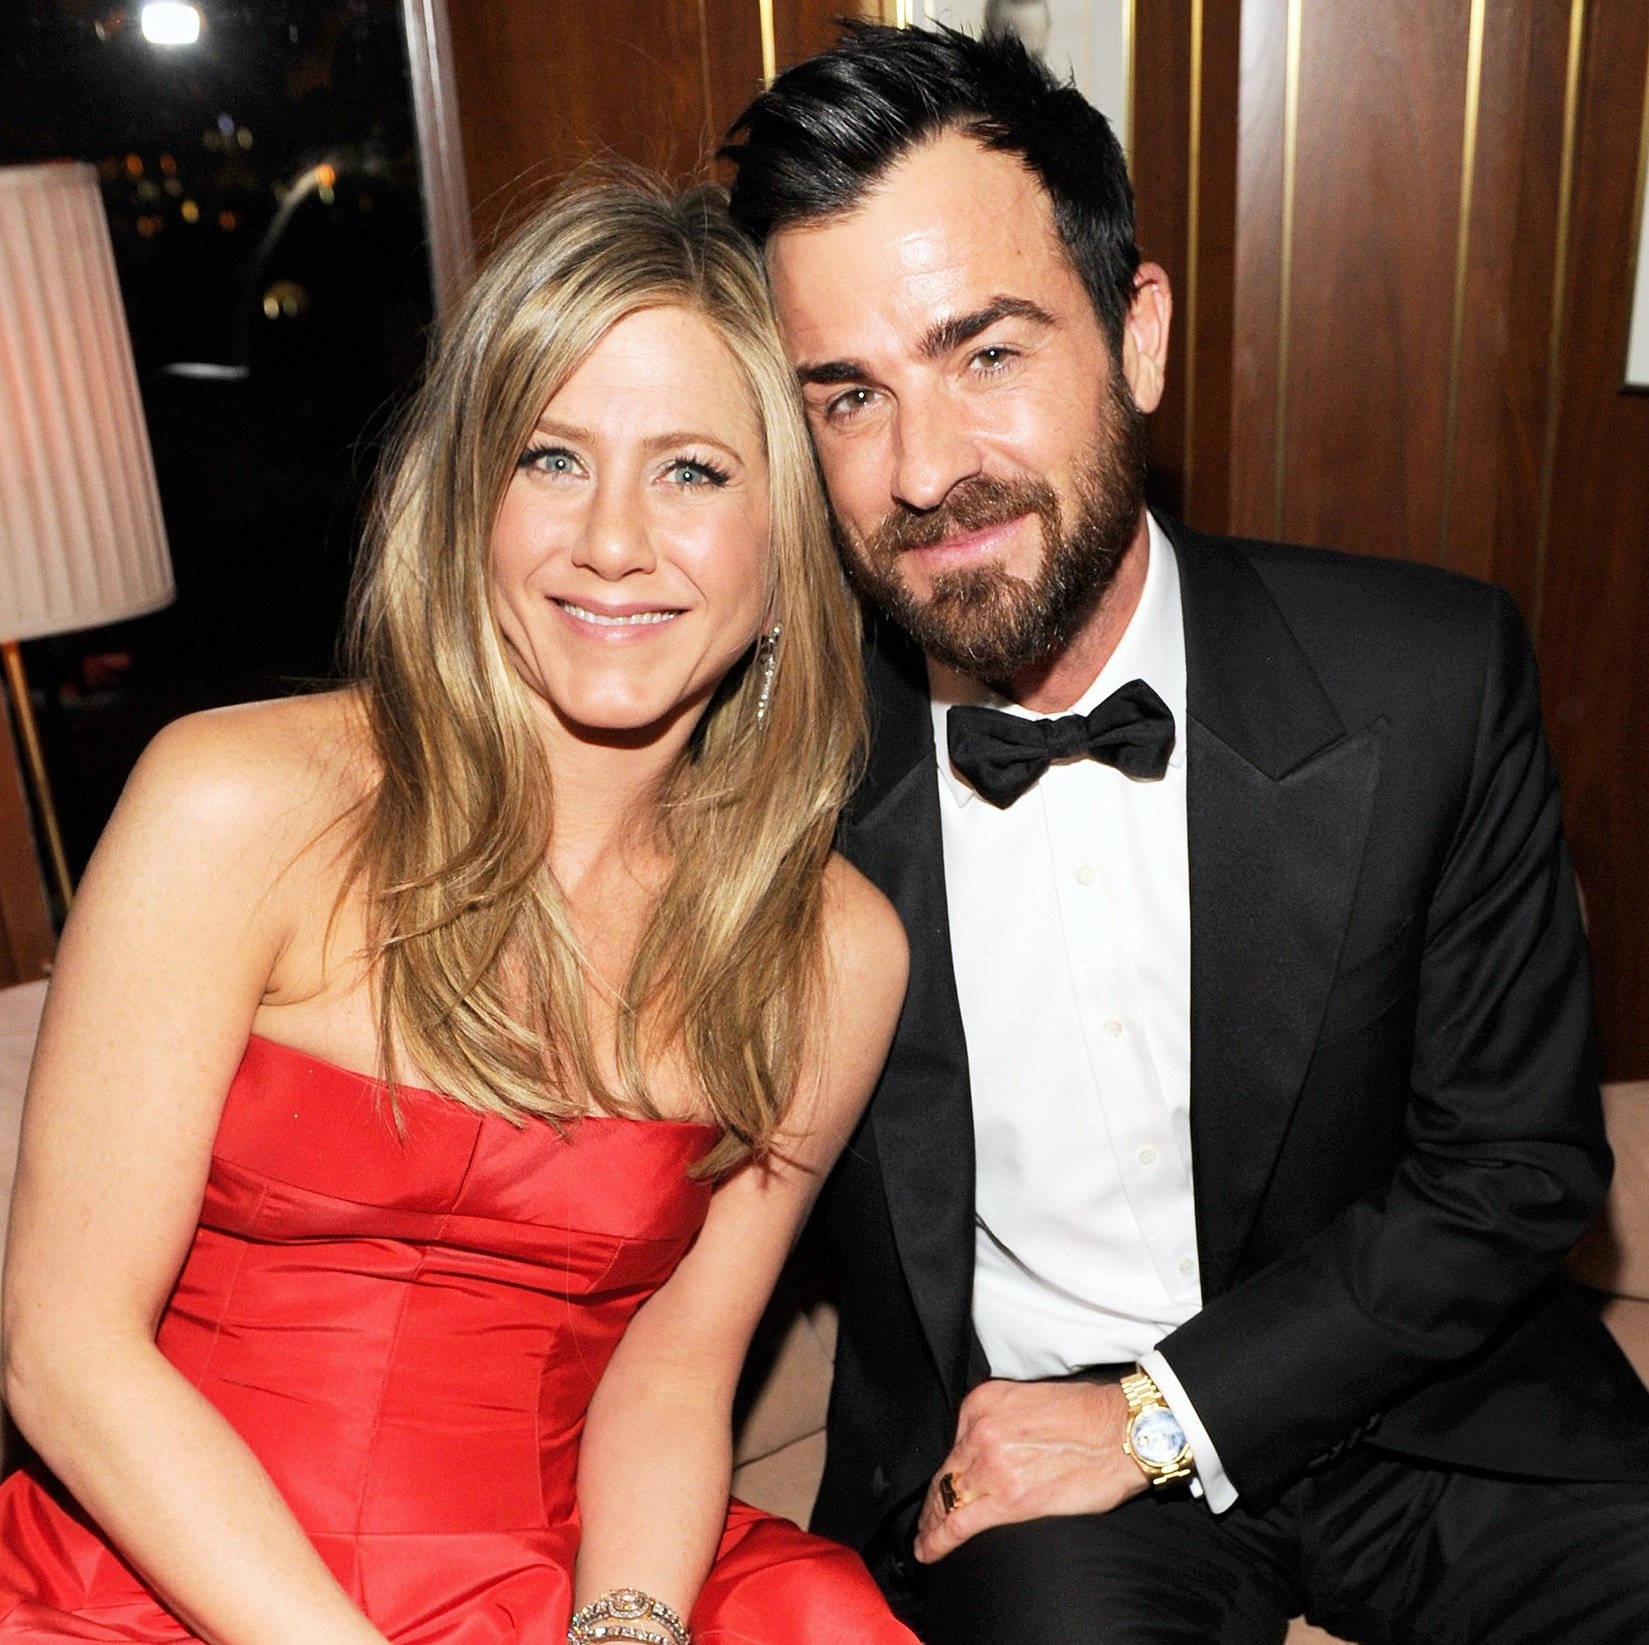 jennifer aniston hasnt given up on love justin theroux split 02 20 Things You Never Knew About Jennifer Aniston